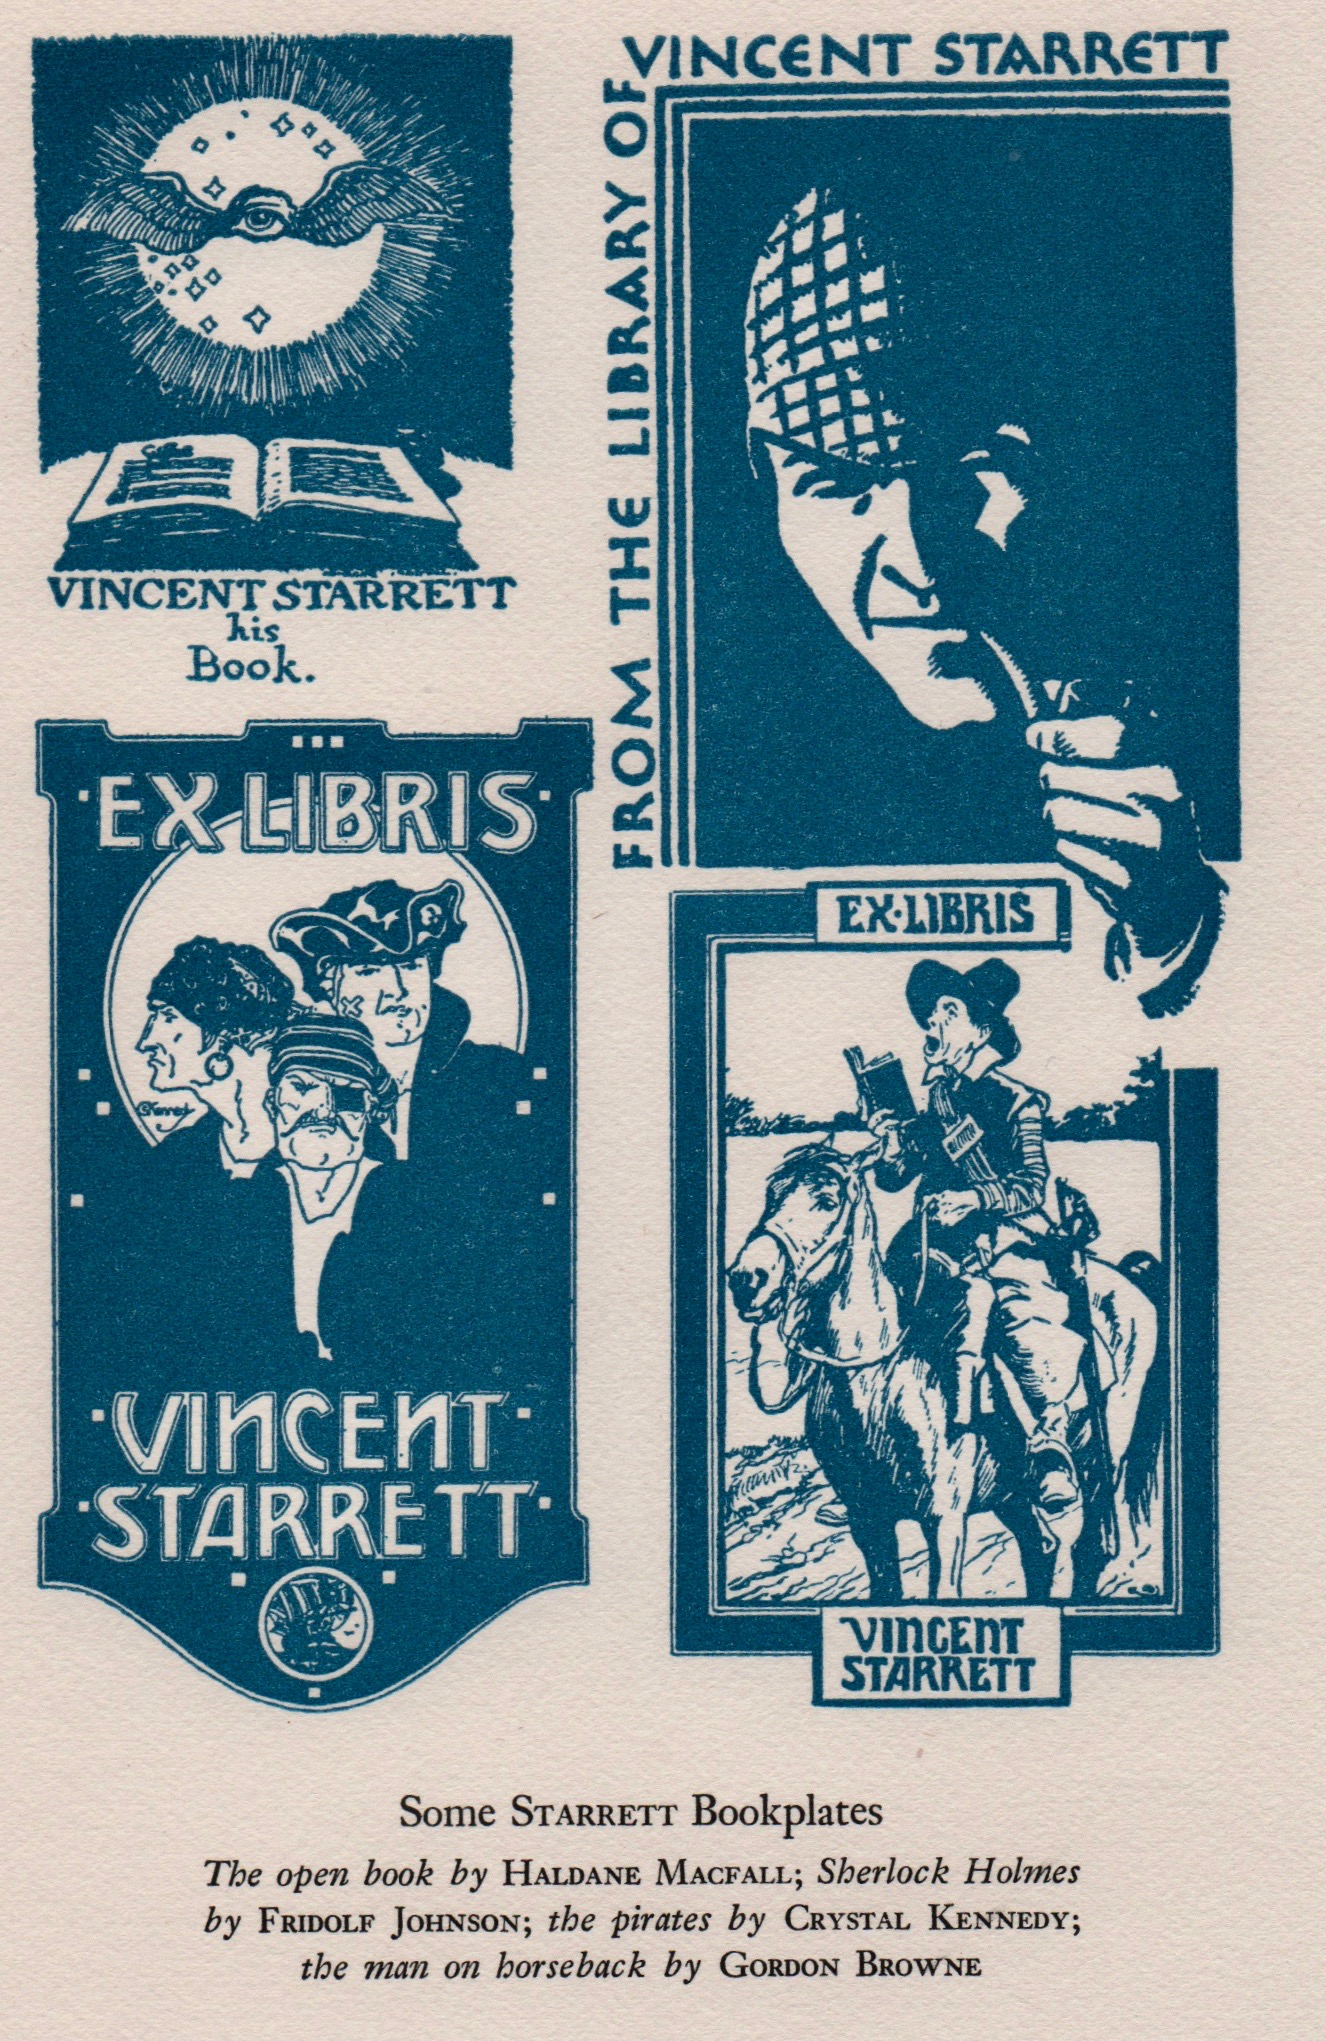 A display of Starrett's bookplates from page 24 of Charles Honce's 1941 bibliography,  A Vincent Starrett Library: The Astonishing Result of Twenty-three Years of Literary Activity .